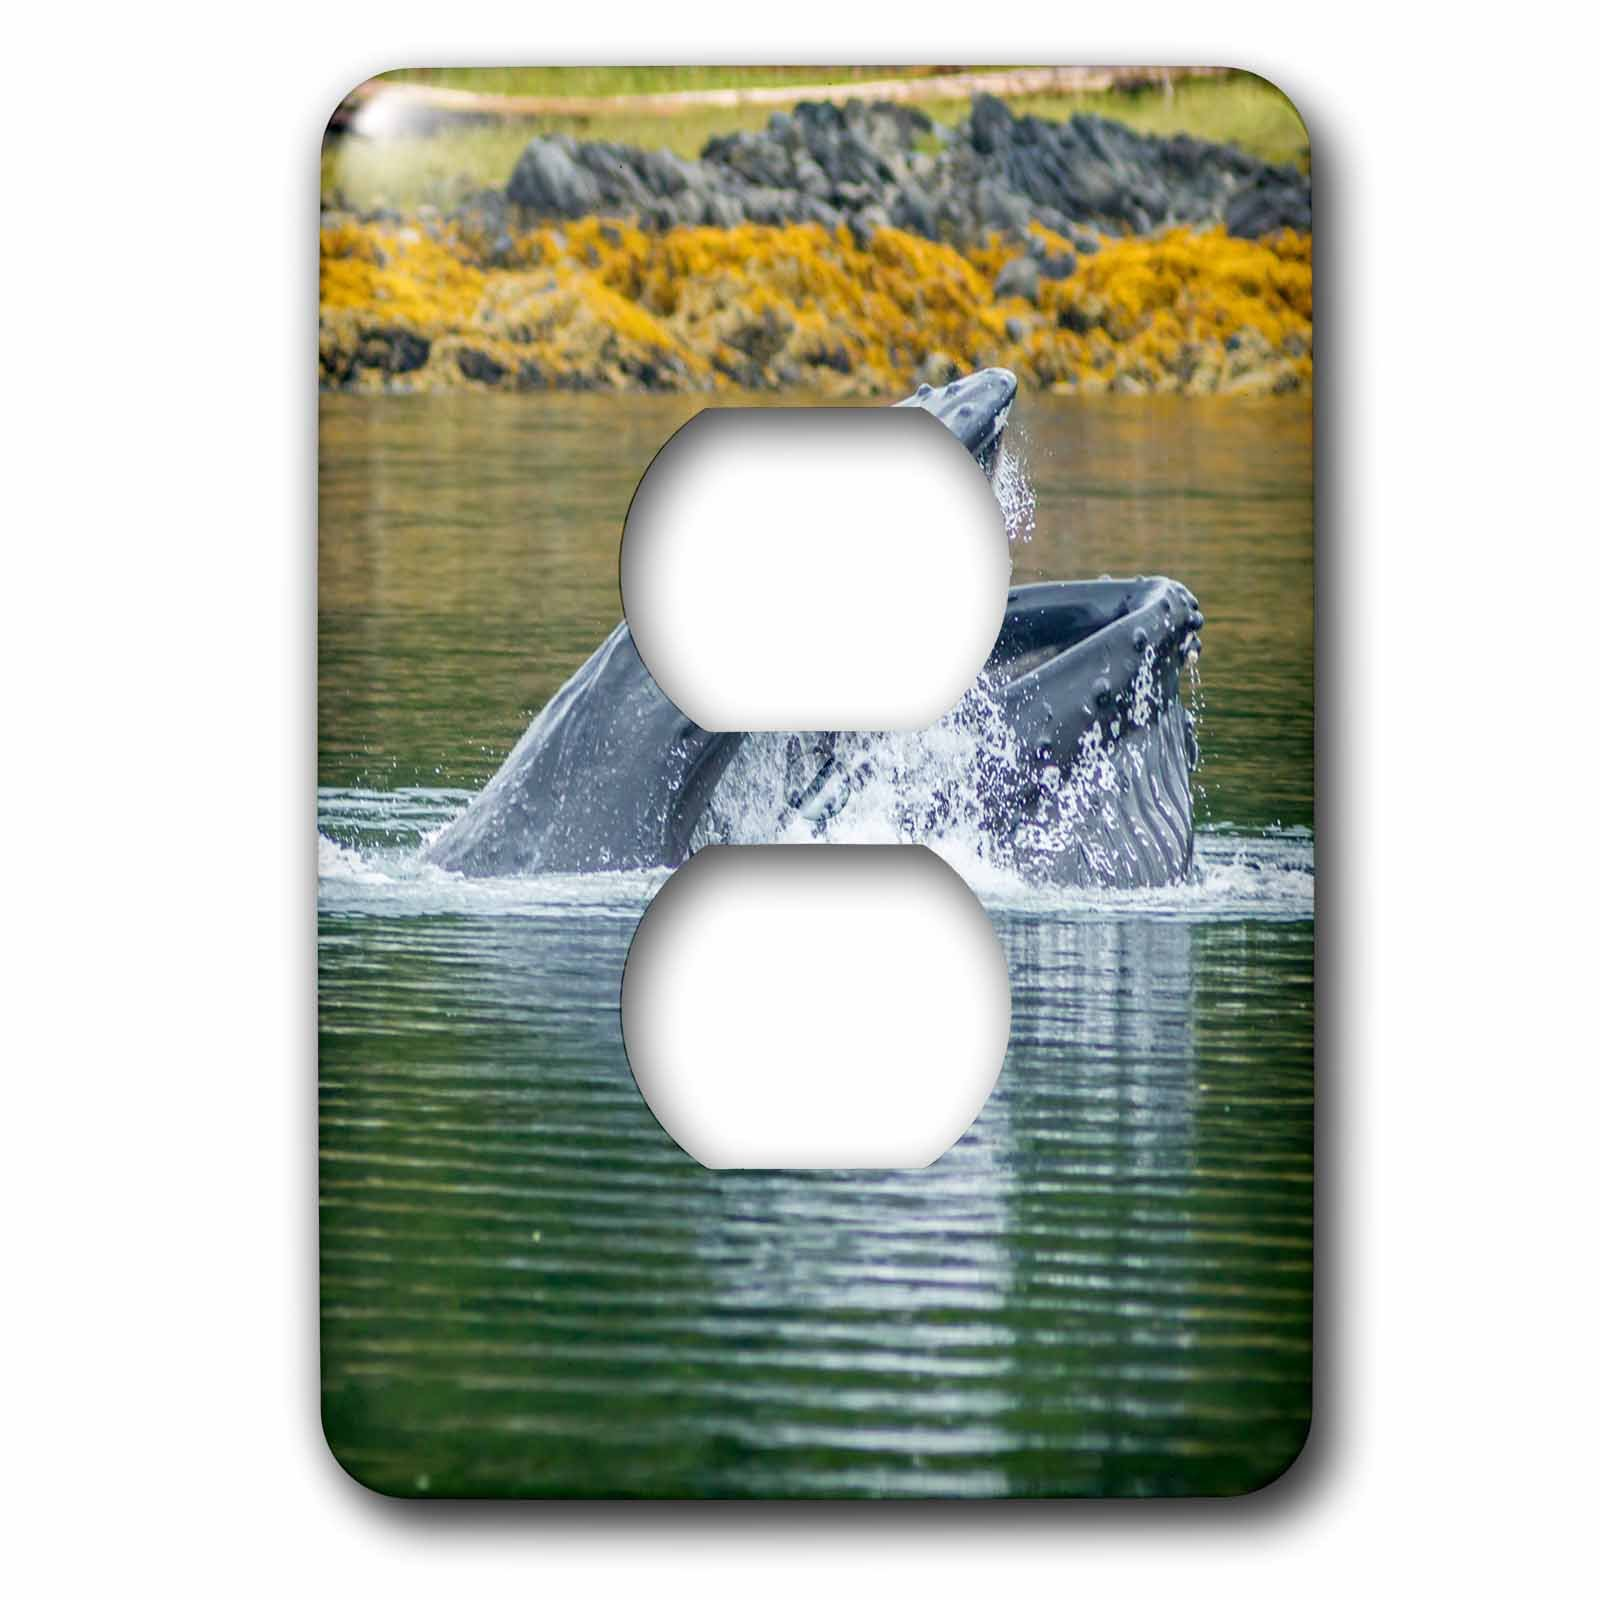 3dRose Danita Delimont - Whales - USA, Alaska, Tongass National Forest. Humpback whale lunge feeds. - Light Switch Covers - 2 plug outlet cover (lsp_278363_6)